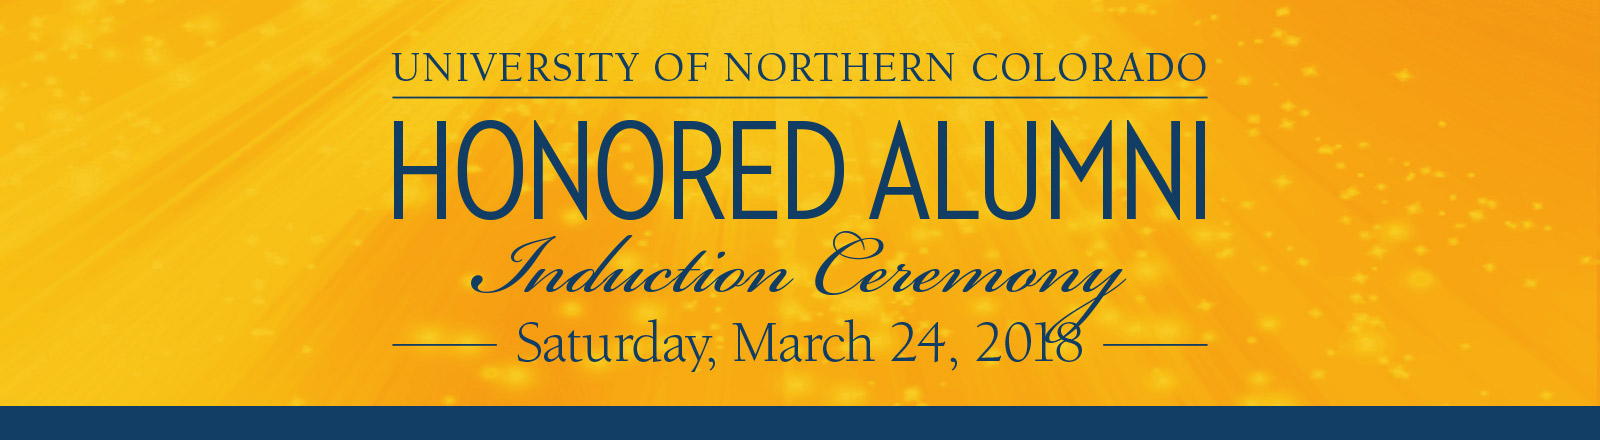 Honored Alumni Ceremony March 24